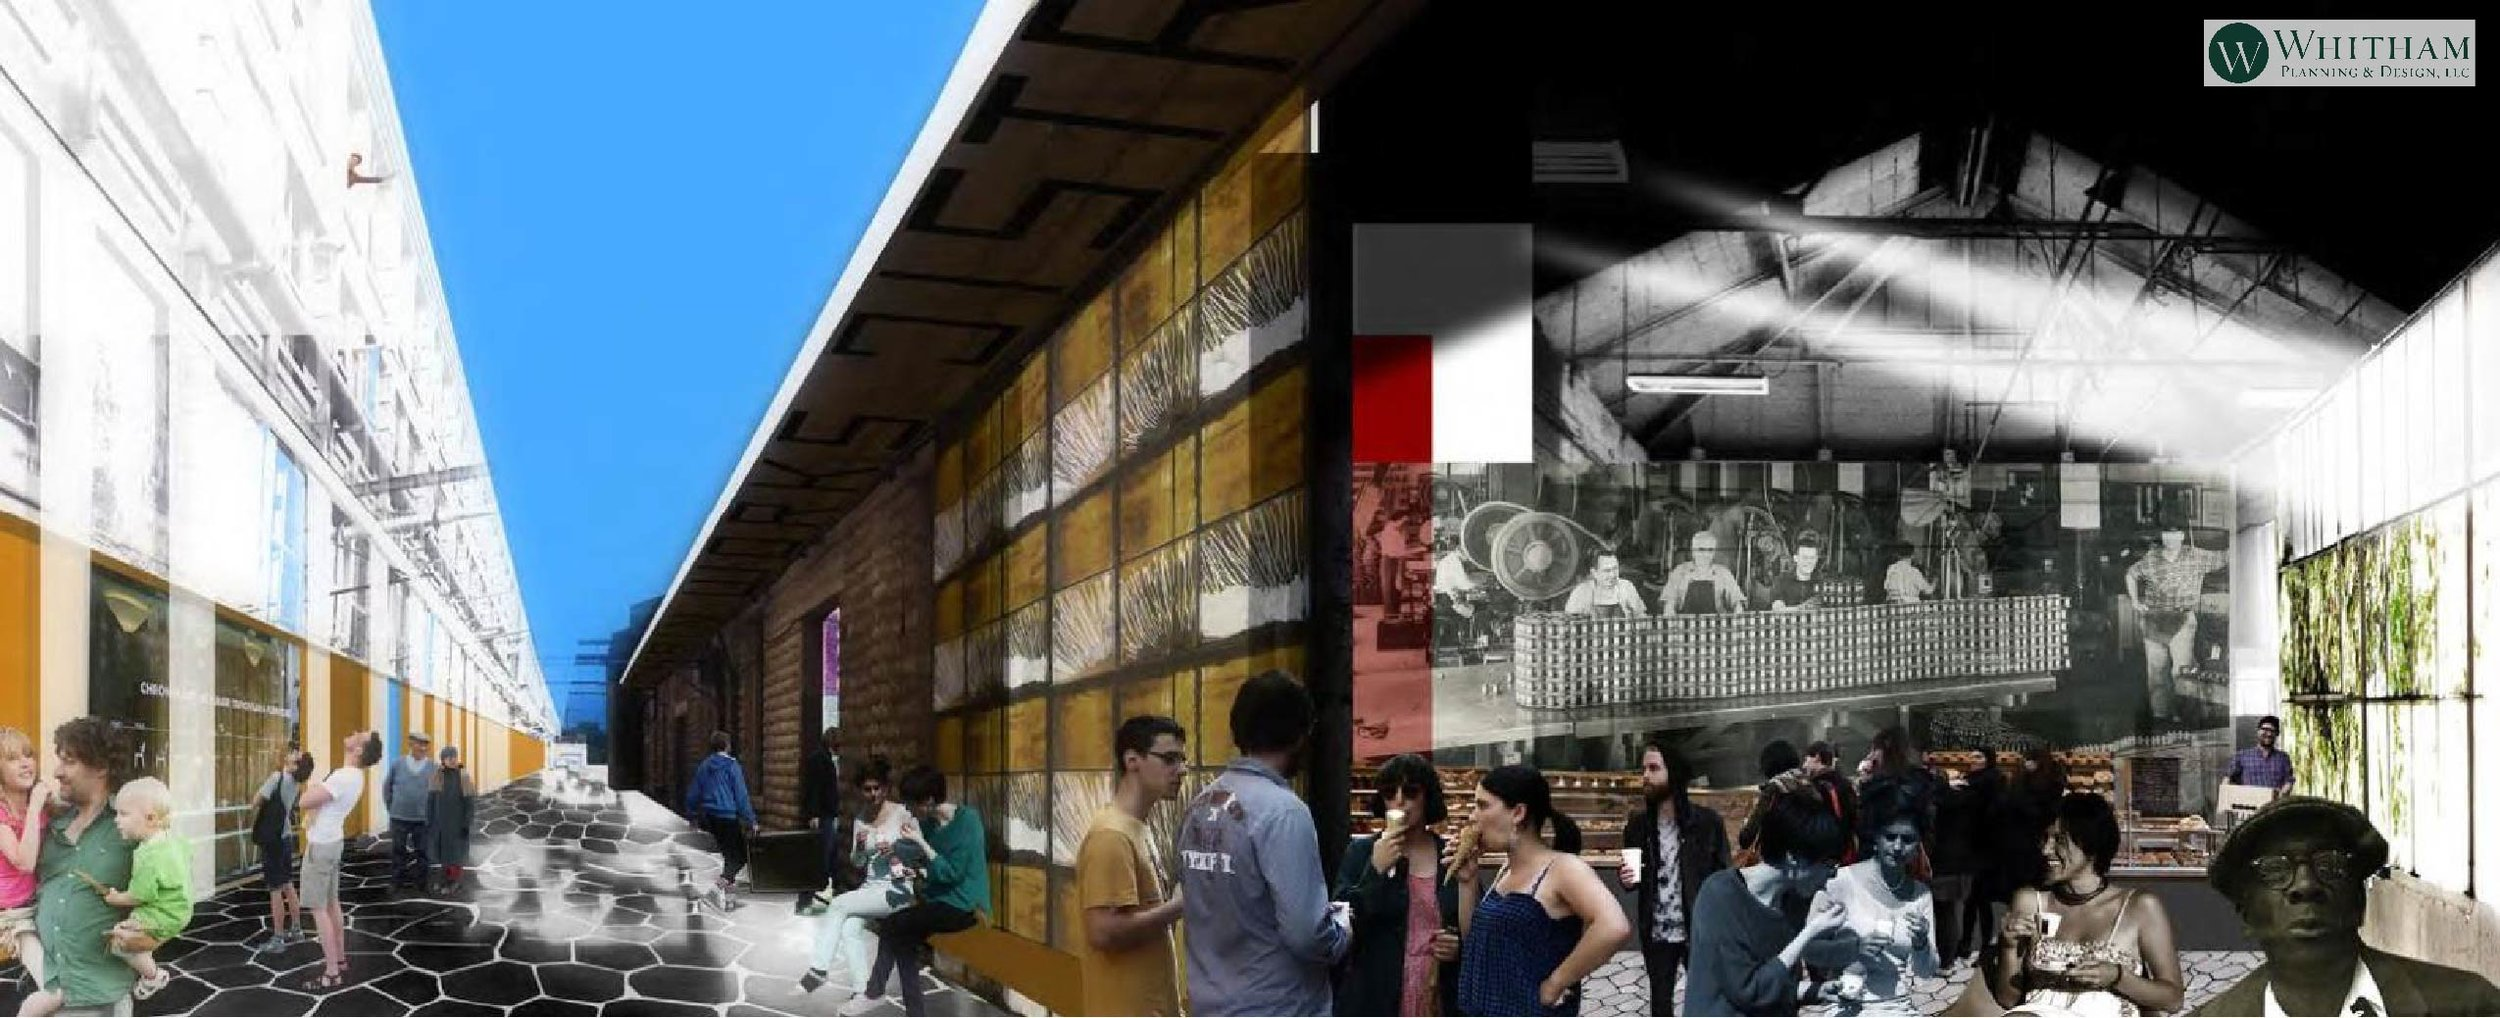 Chain-Works-Proposed-Perspective-Presentation 2014.08.01 14-01.jpg